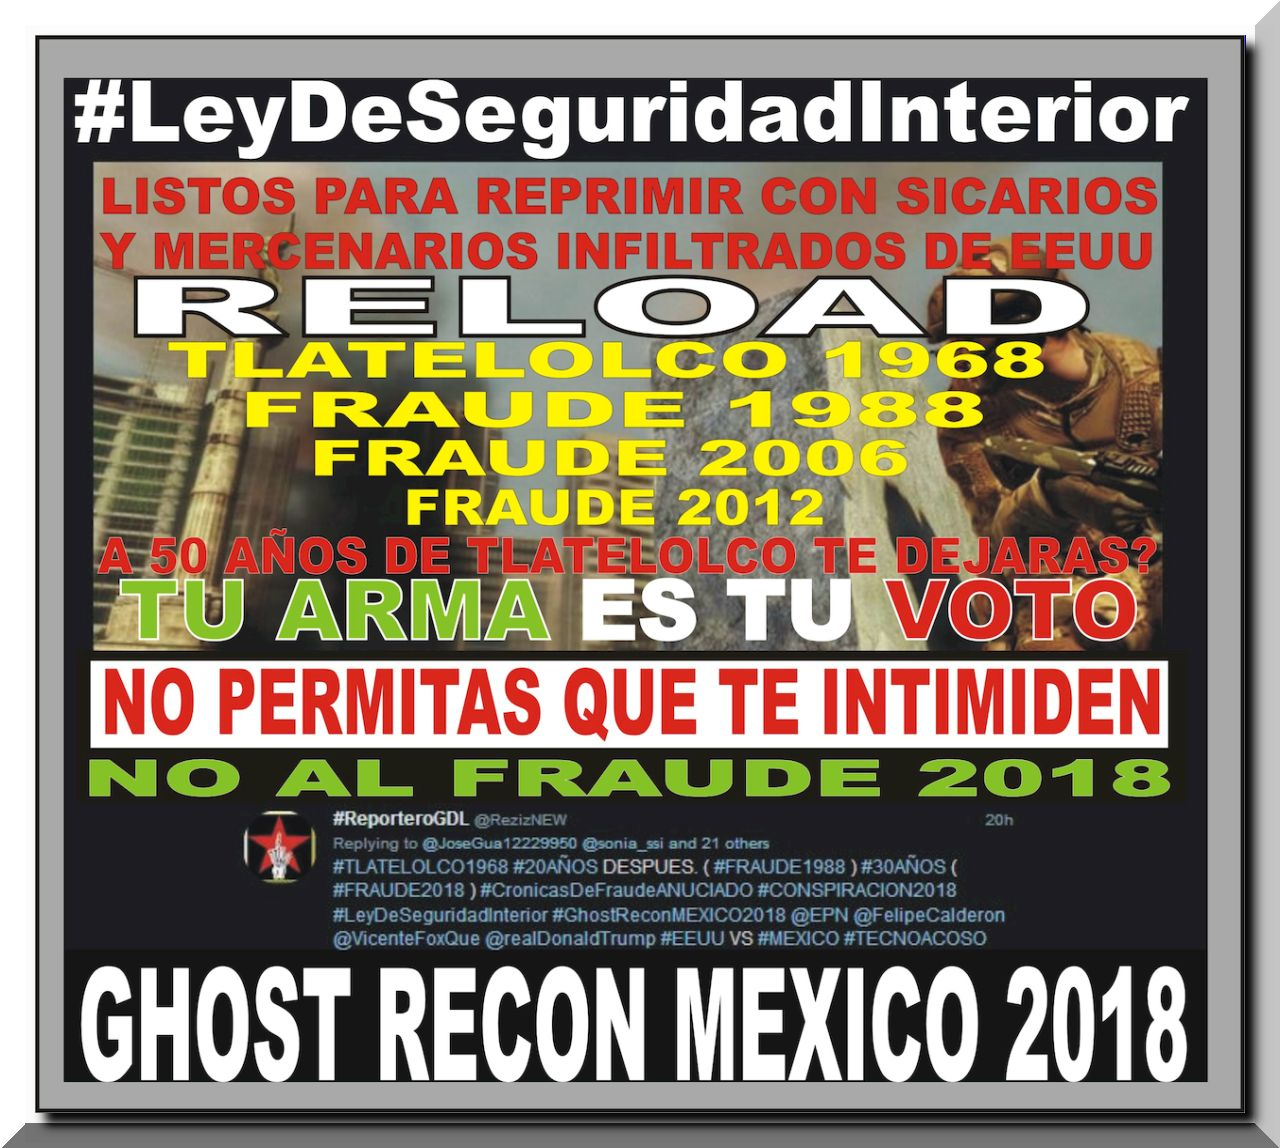 https://plus.google.com/u/0/+GhostReconMEXICO/posts/5KA3oF8PRPD